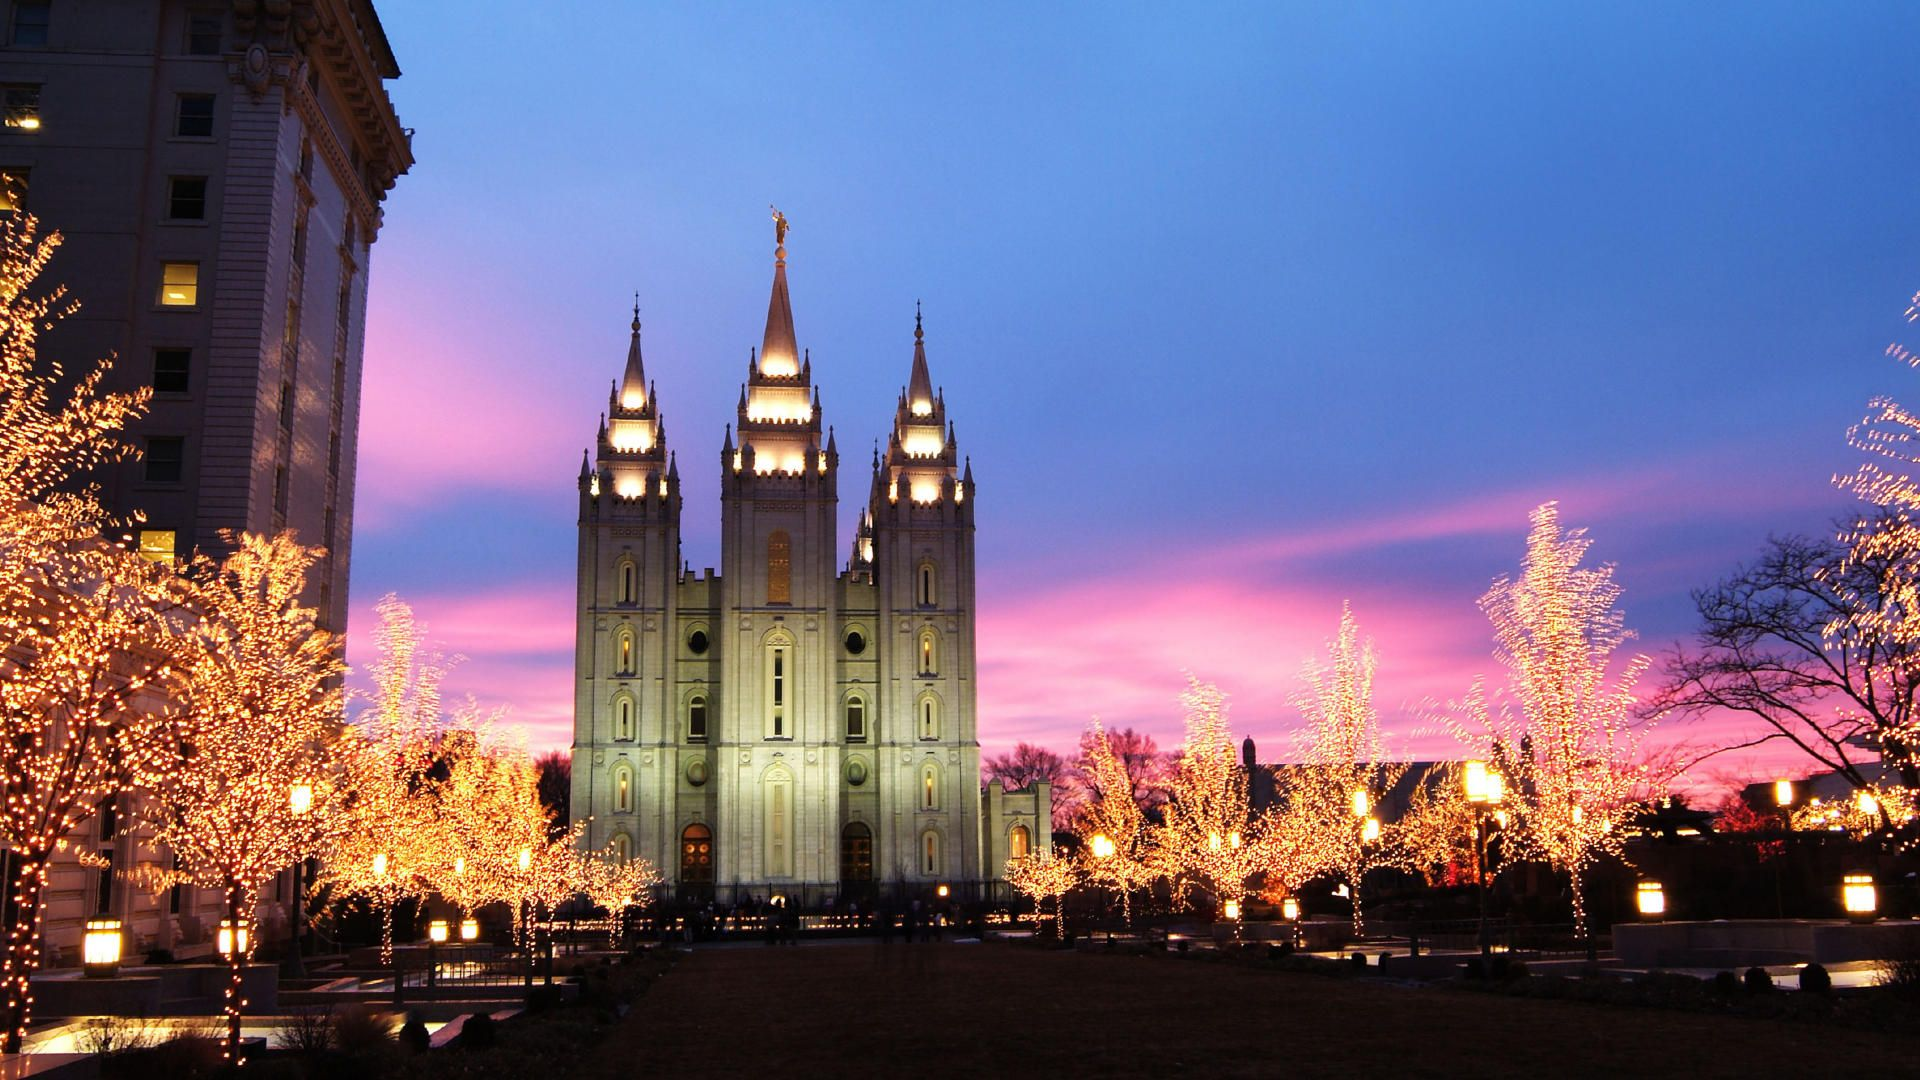 ldsorg temples Salt Lake City at Christmas time Lds temples 1920x1080